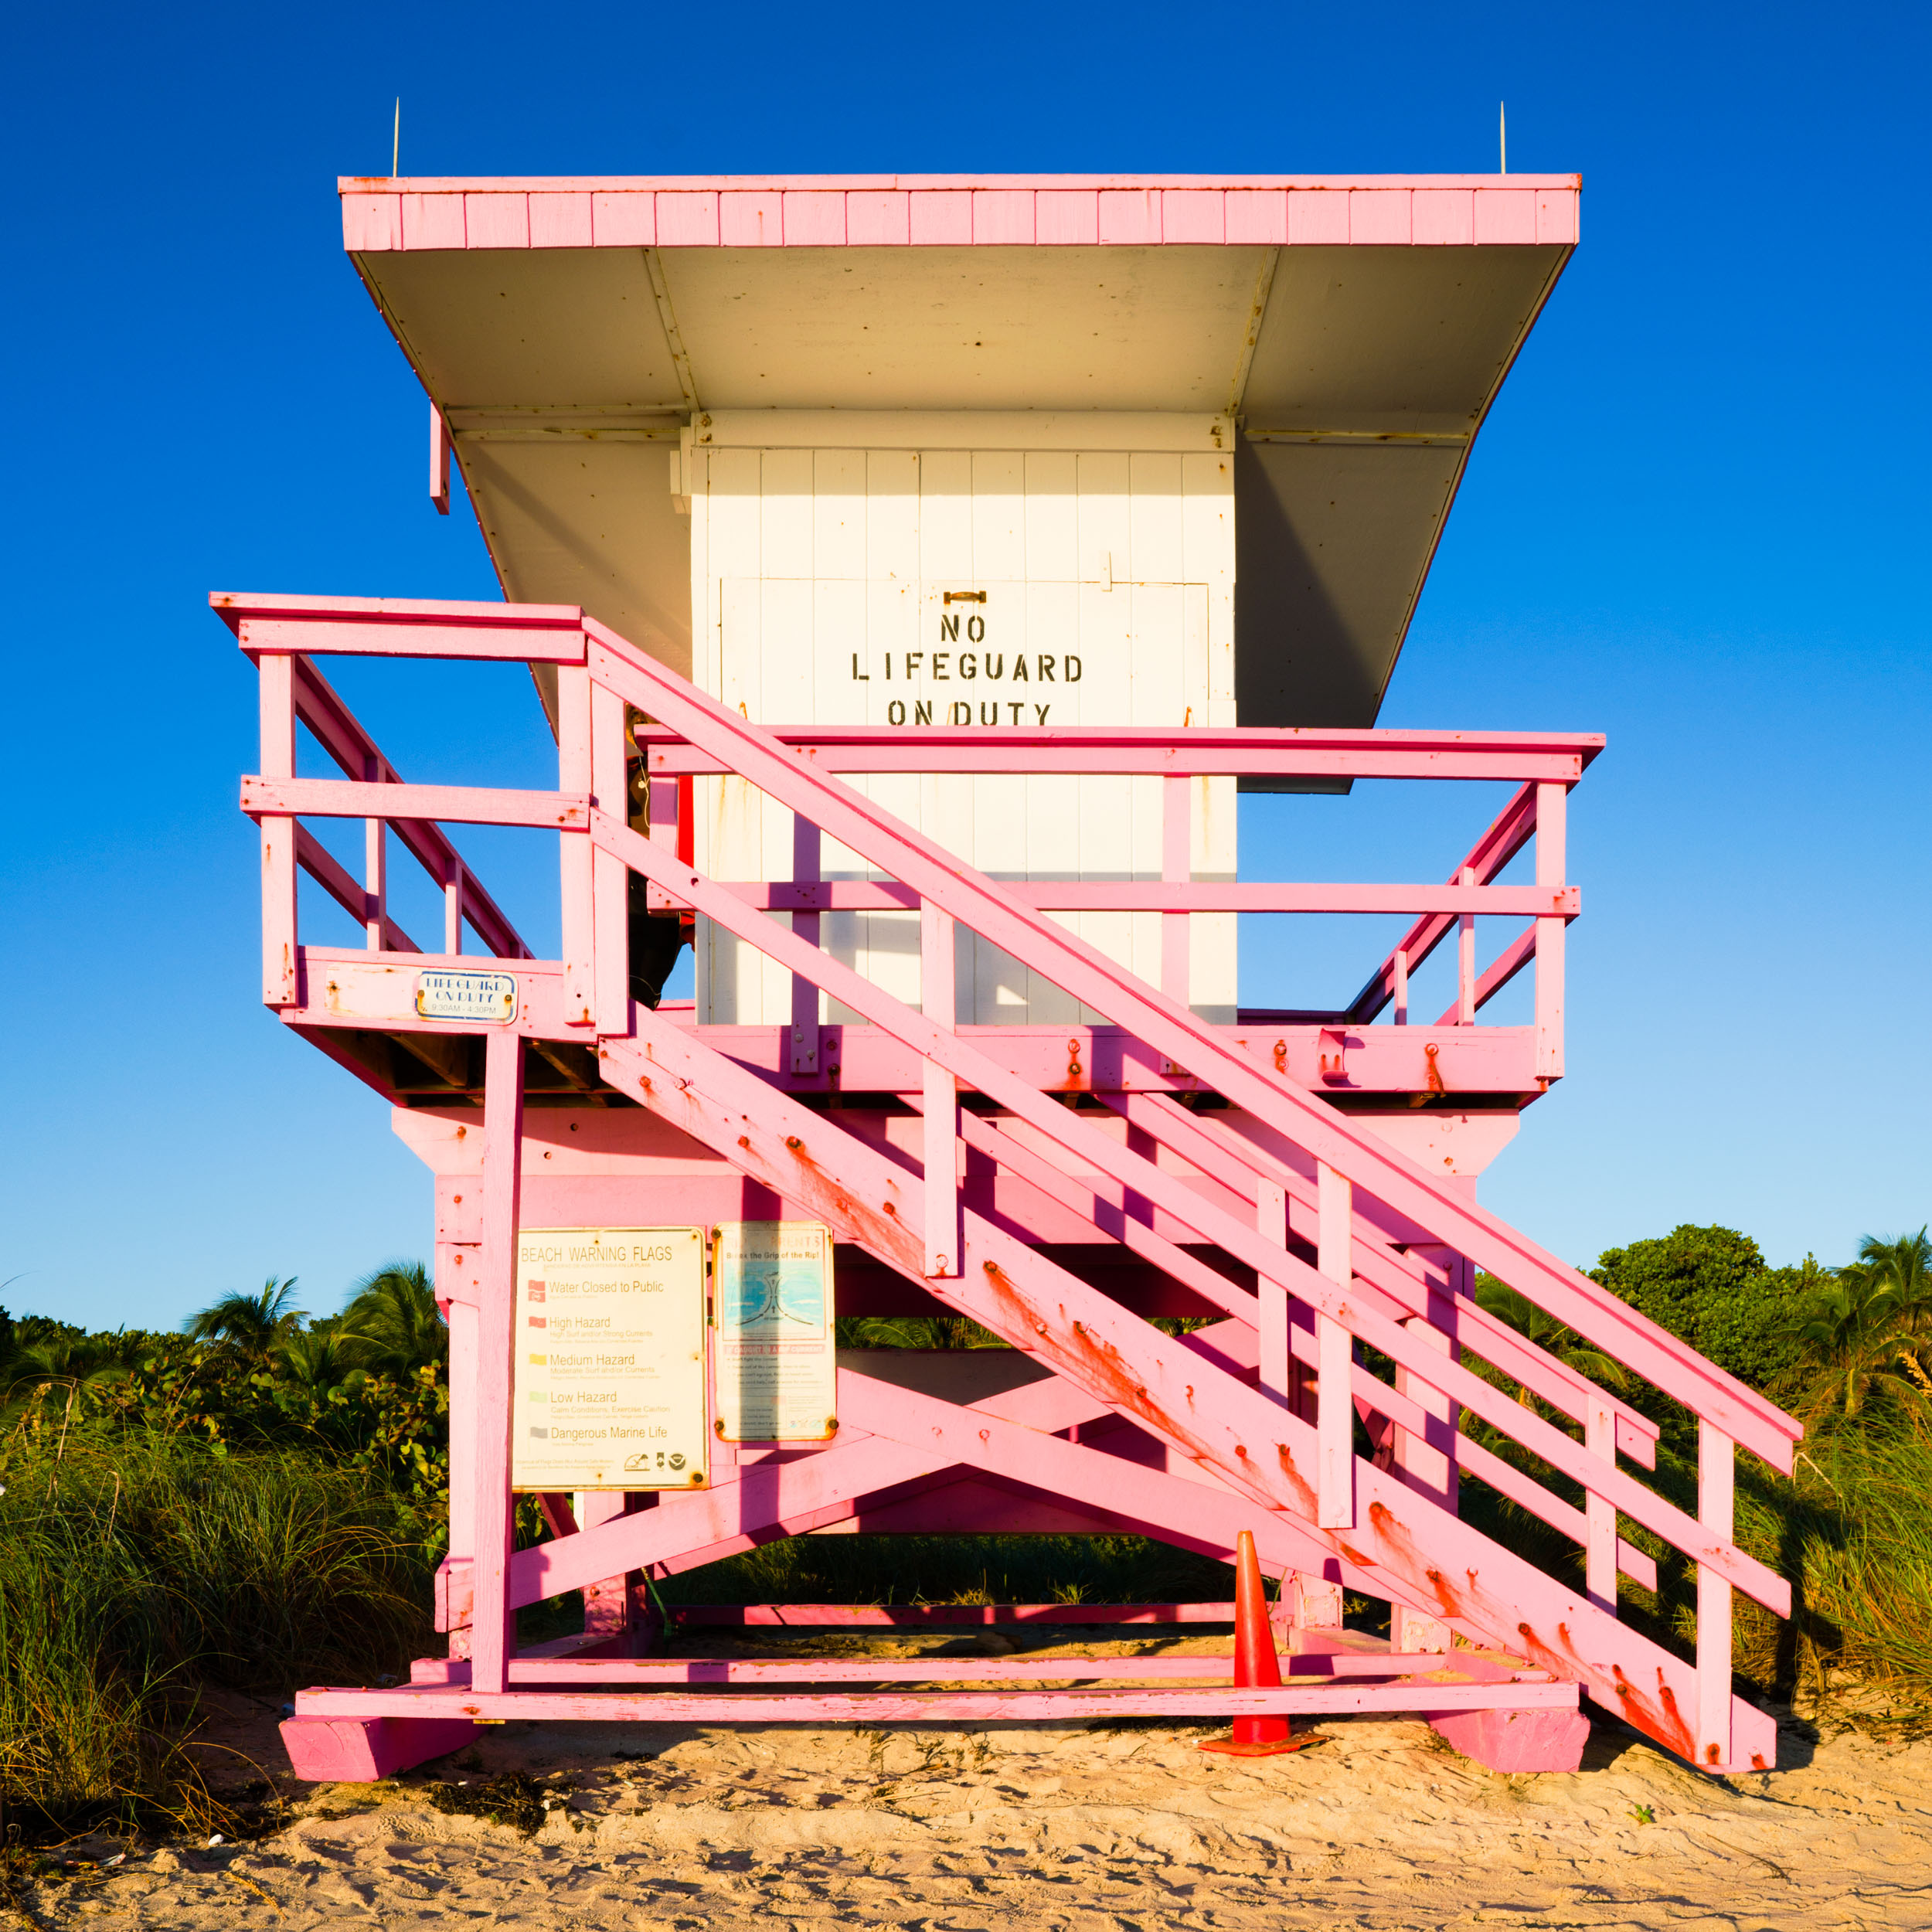 83rd St. Miami Lifeguard Stand - Front View